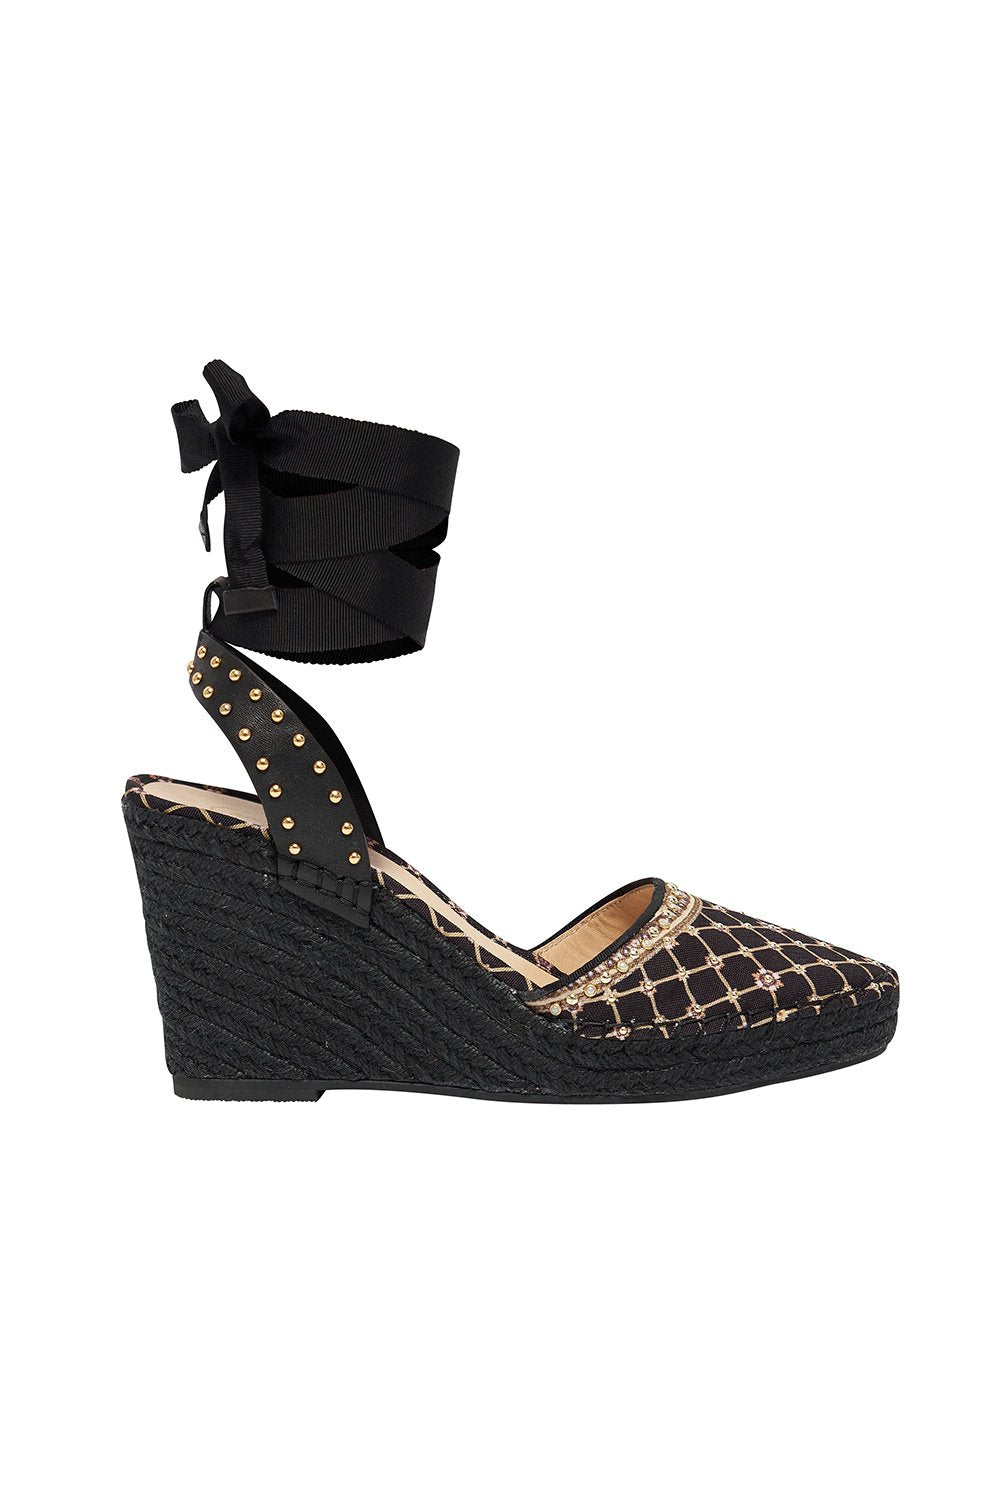 ESPADRILLE WEDGE WITH GROSGRAIN TIE MONTAGUES CAPULET